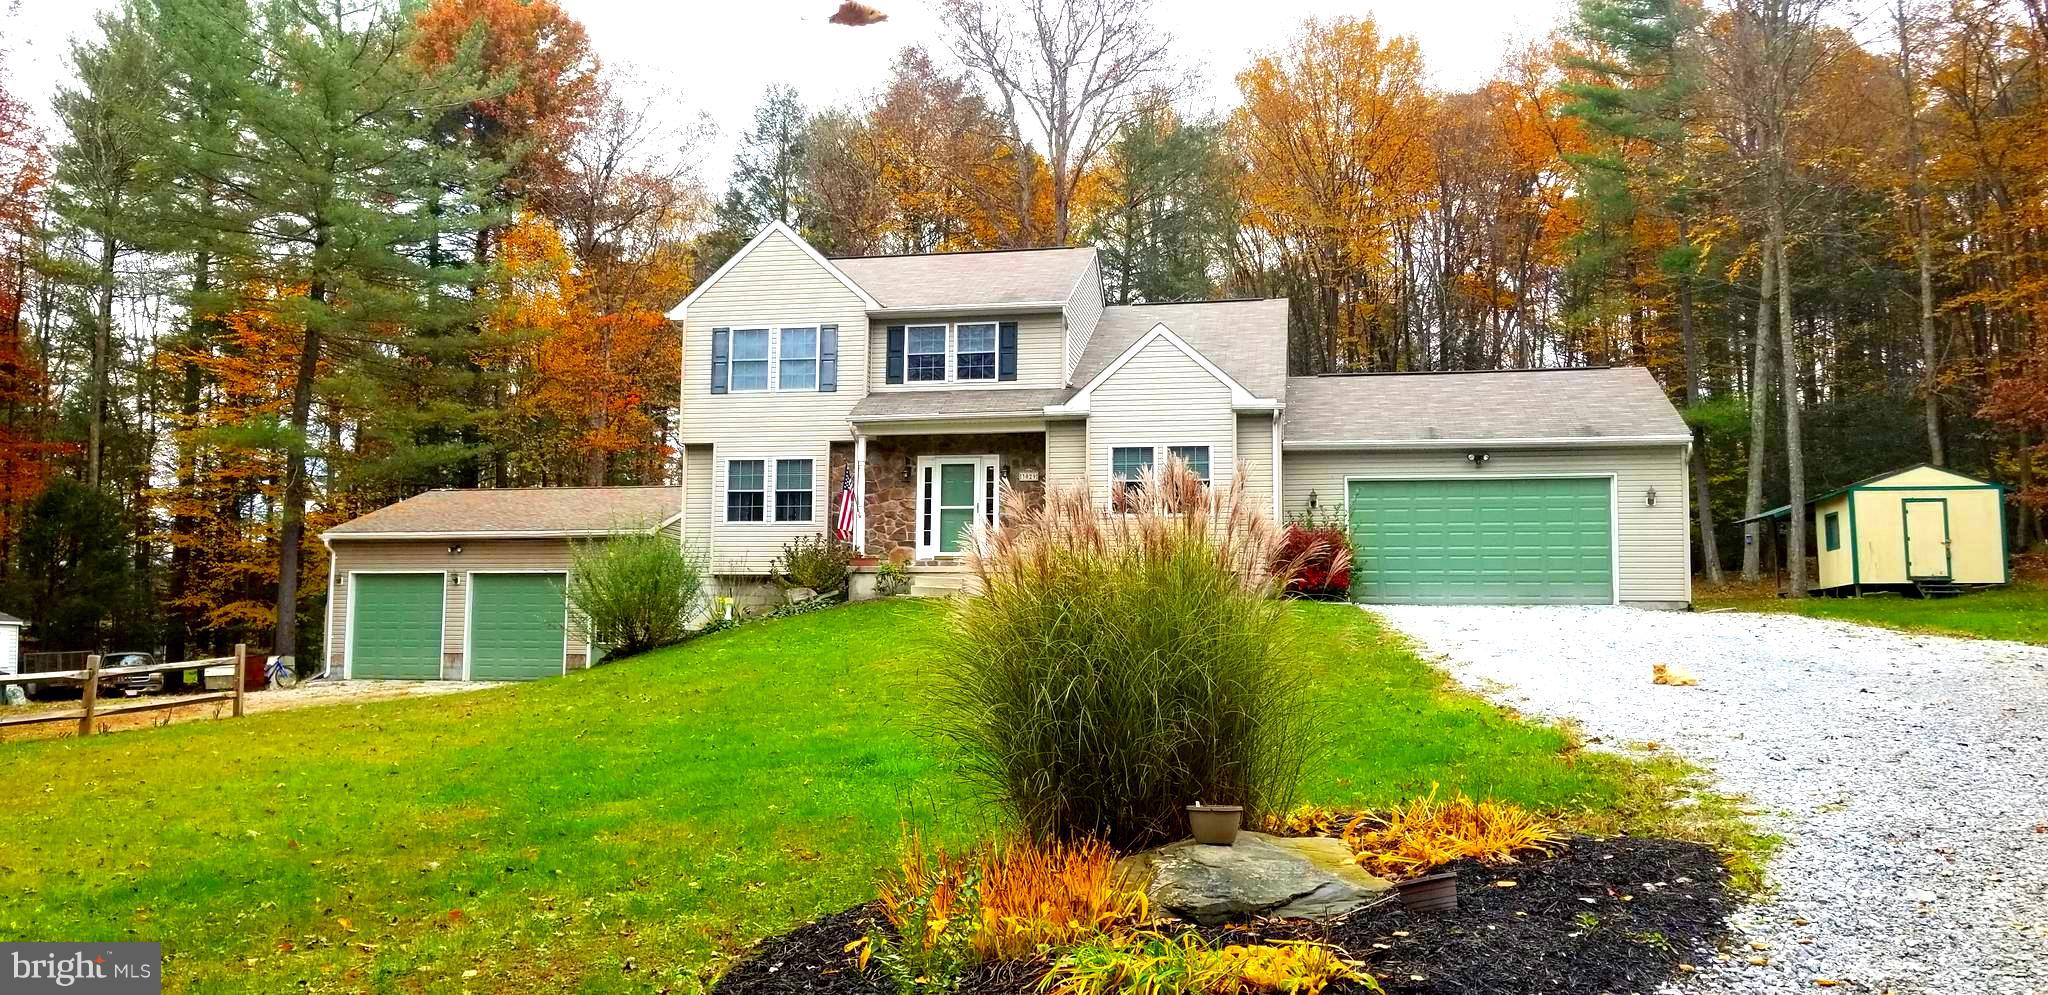 3029 BUCHANAN VALLEY ROAD, ORRTANNA, PA 17353